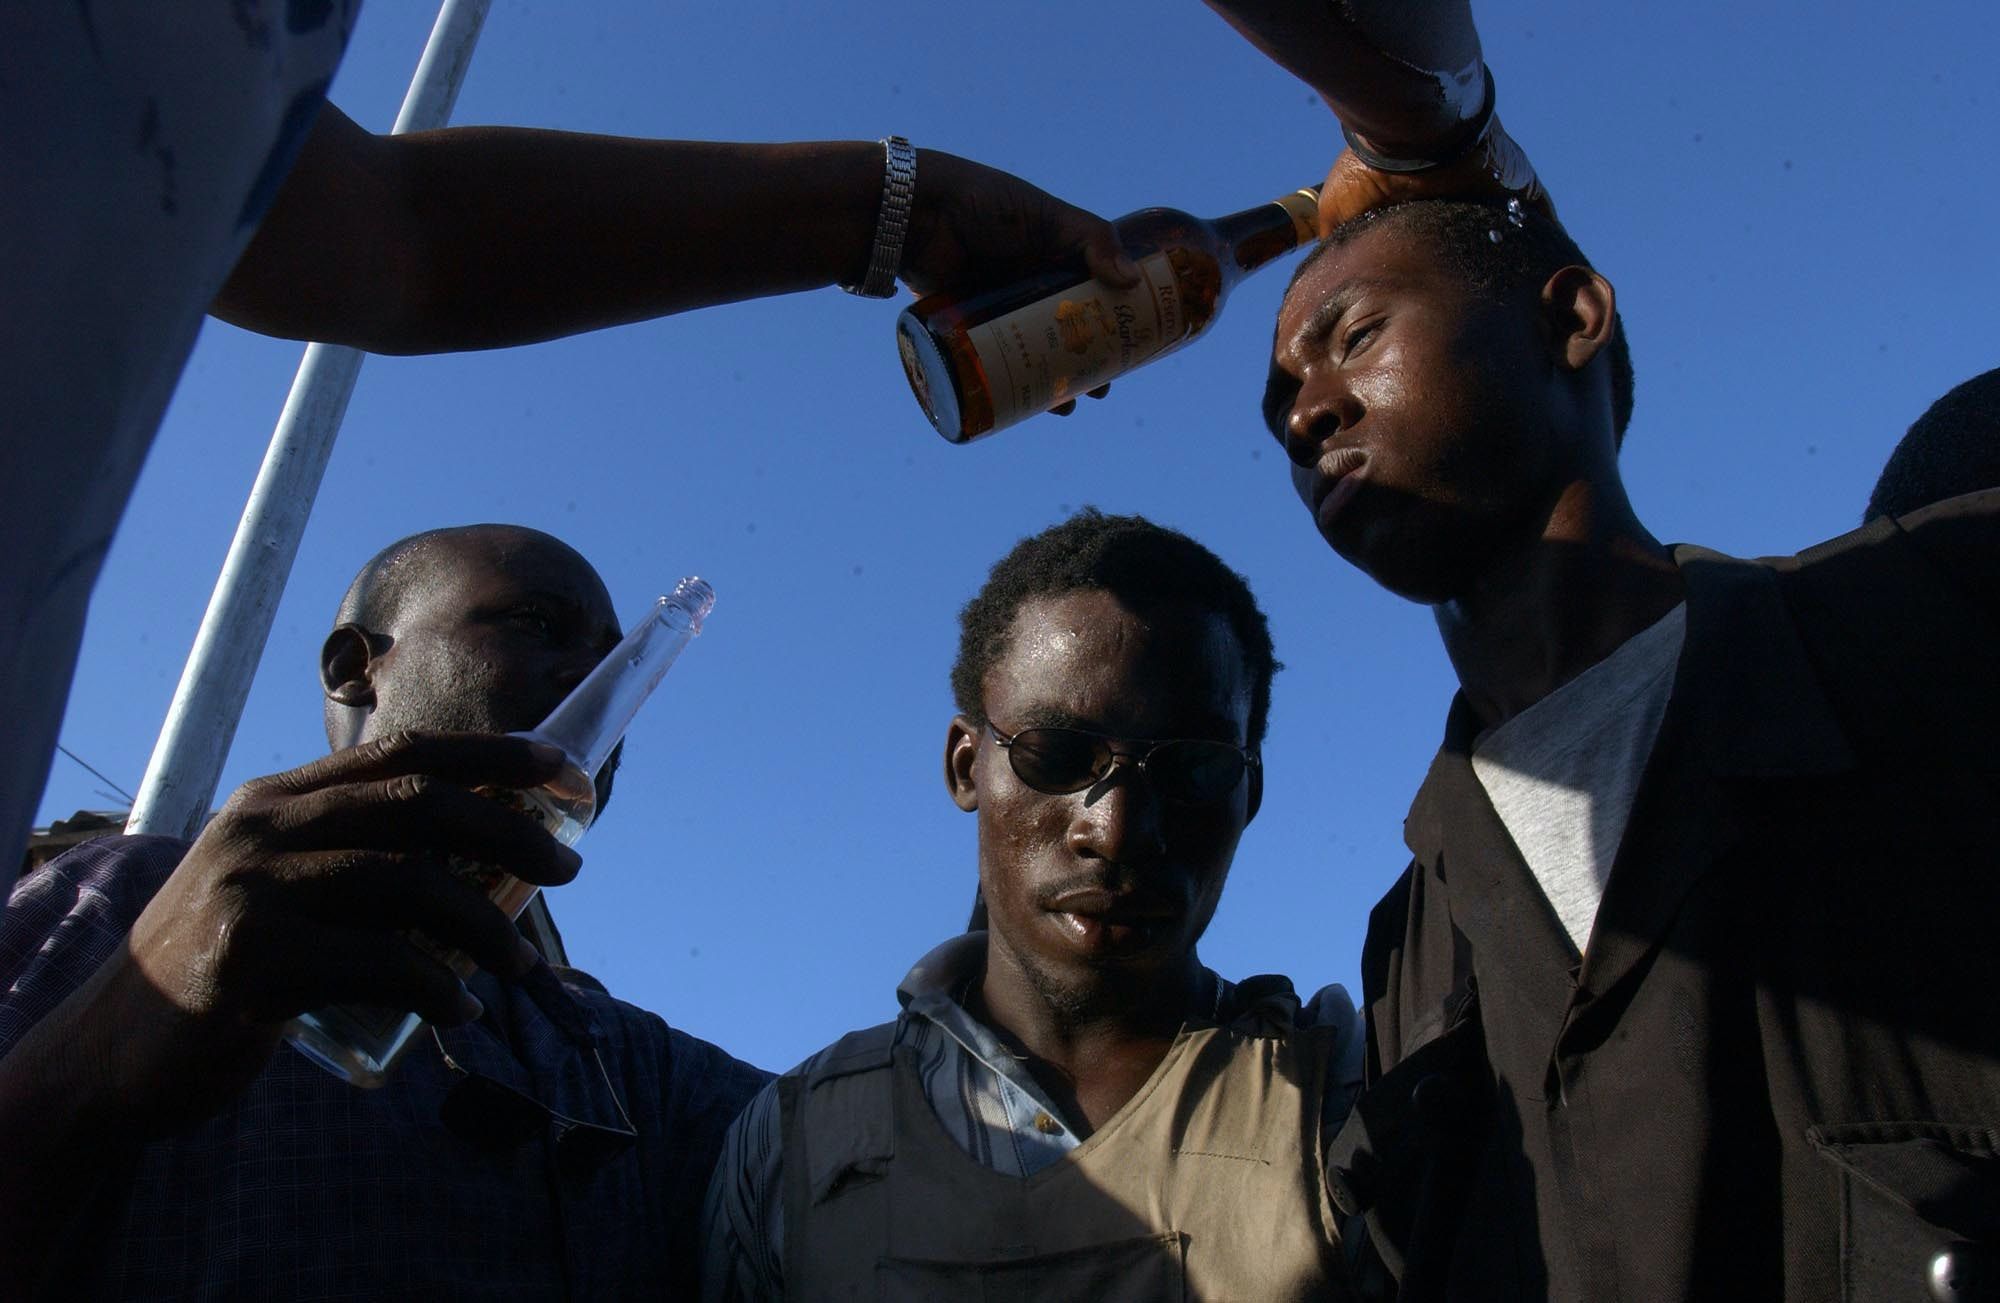 A rebel is blessed during a Voodoo ceremony of the Gonaives Resistance Front, during a march in Gonaives, Haiti, Friday, Feb. 13, 2004, in honor of a former leader of the group, Amoit Metayer who was killed last Sept. 21. The Gonaives Resistance Front used to be allied with Aristide, but turned against the Haitian President last year. (AP Photo/WalterAstrada)